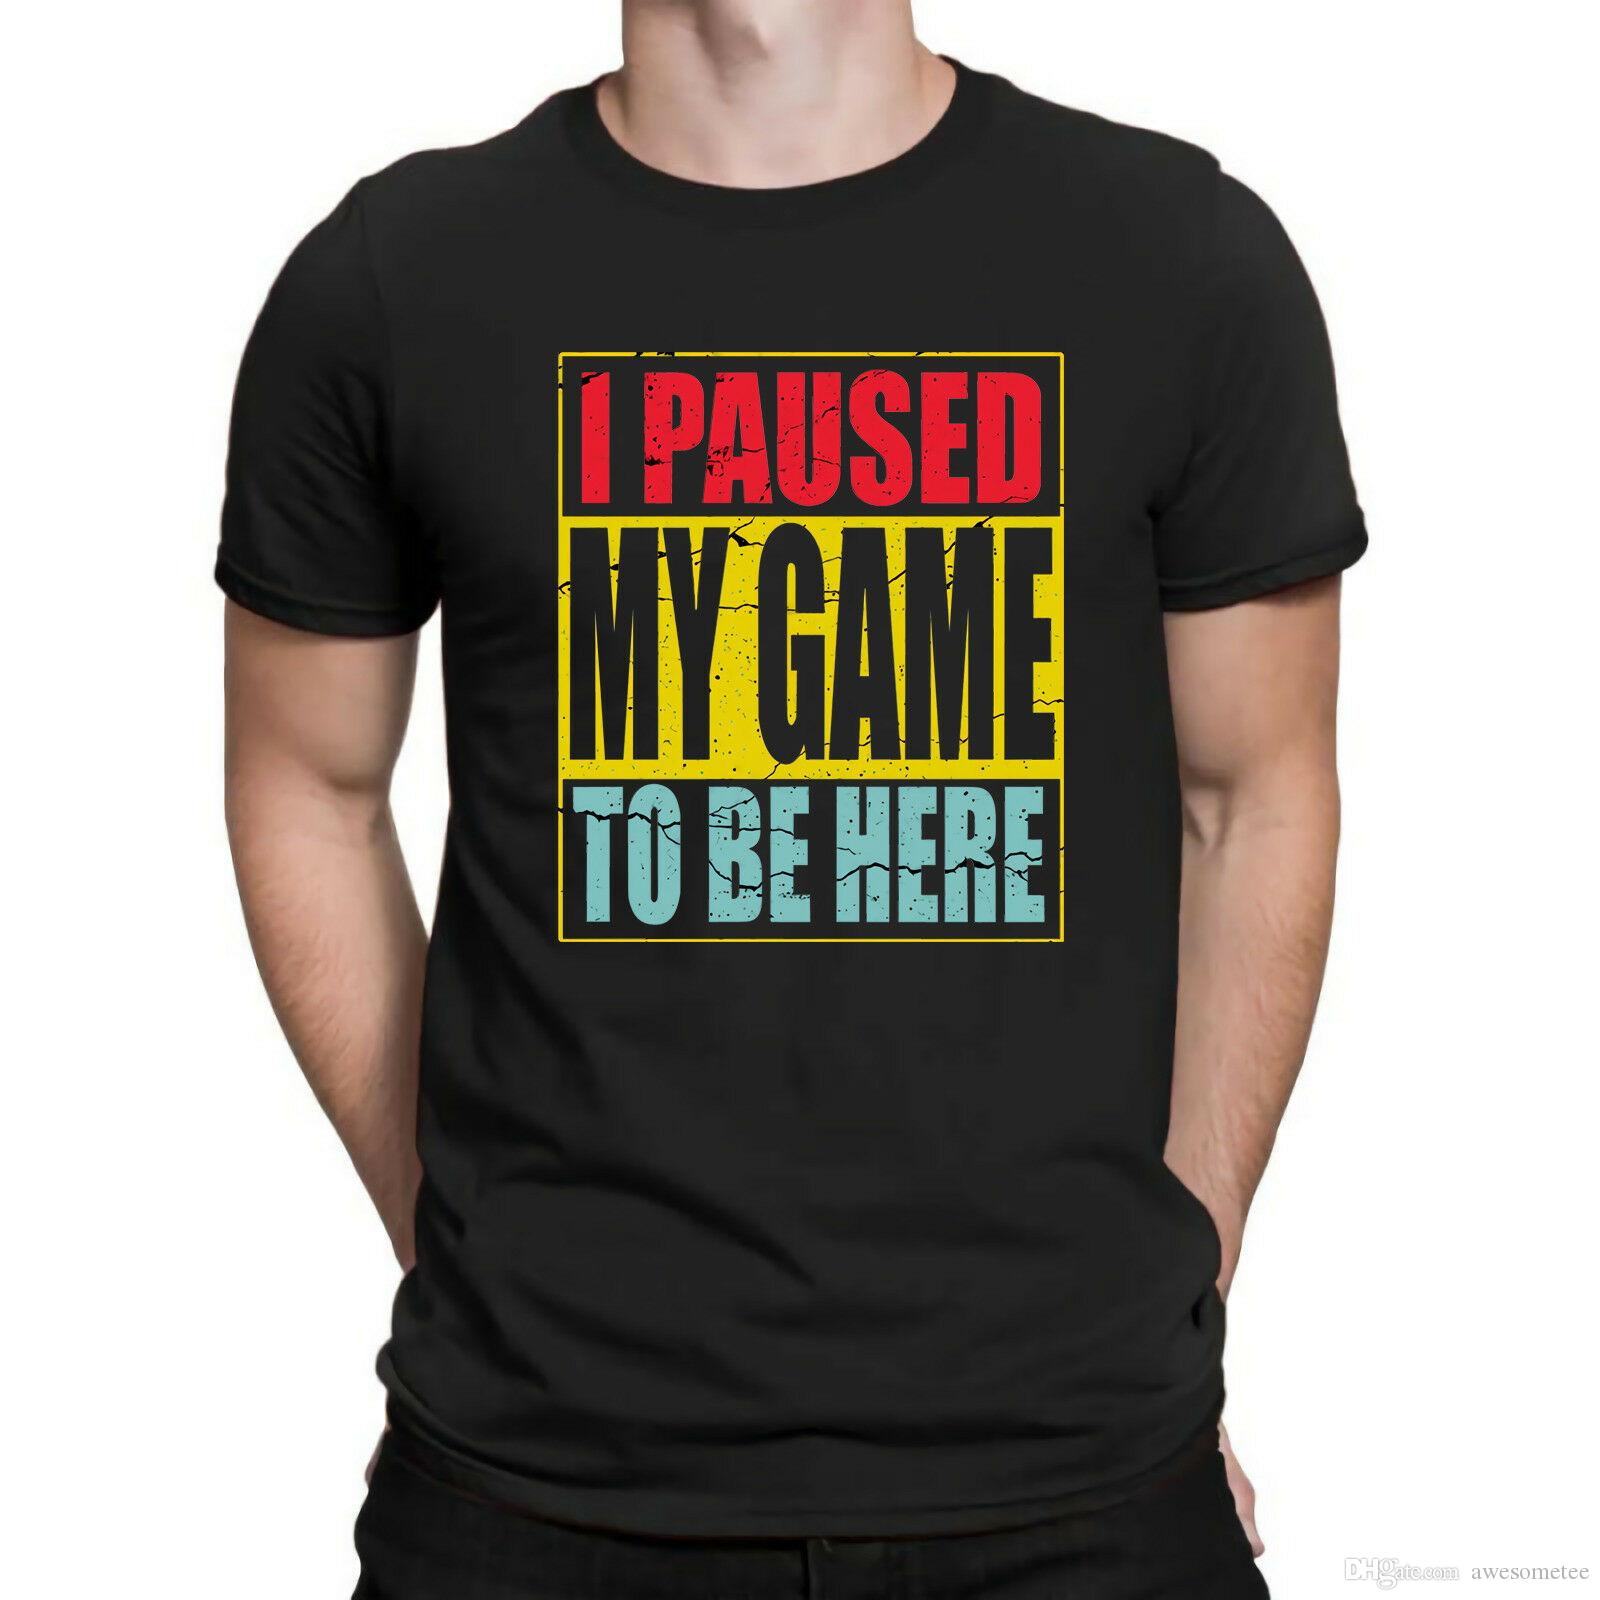 82c282a0 I Paused My Game To Be Here Retro Vintage T Shirt Funny Gaming Gamer Cotton  Tee Tees Shirts T Shirt Site From Awesometee, $11.17| DHgate.Com